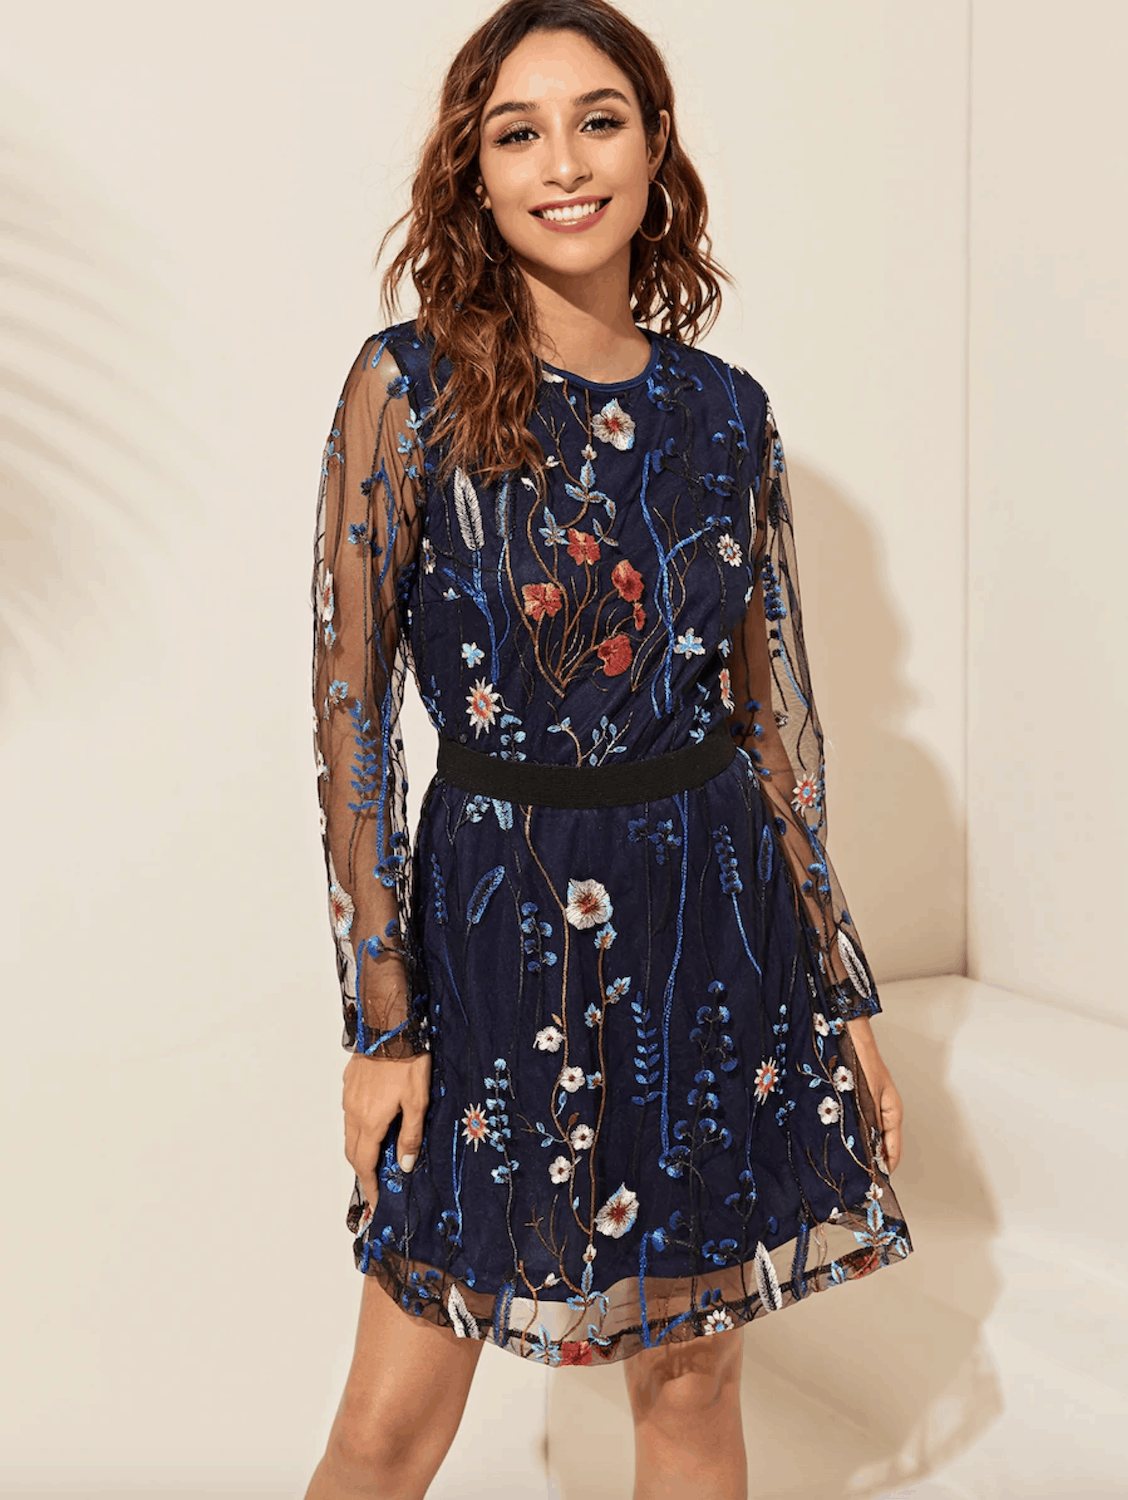 Floral Print Dresses Gorgeous Spring Honeymoon Outfits Floral Embroidery Mesh Overlay Dress